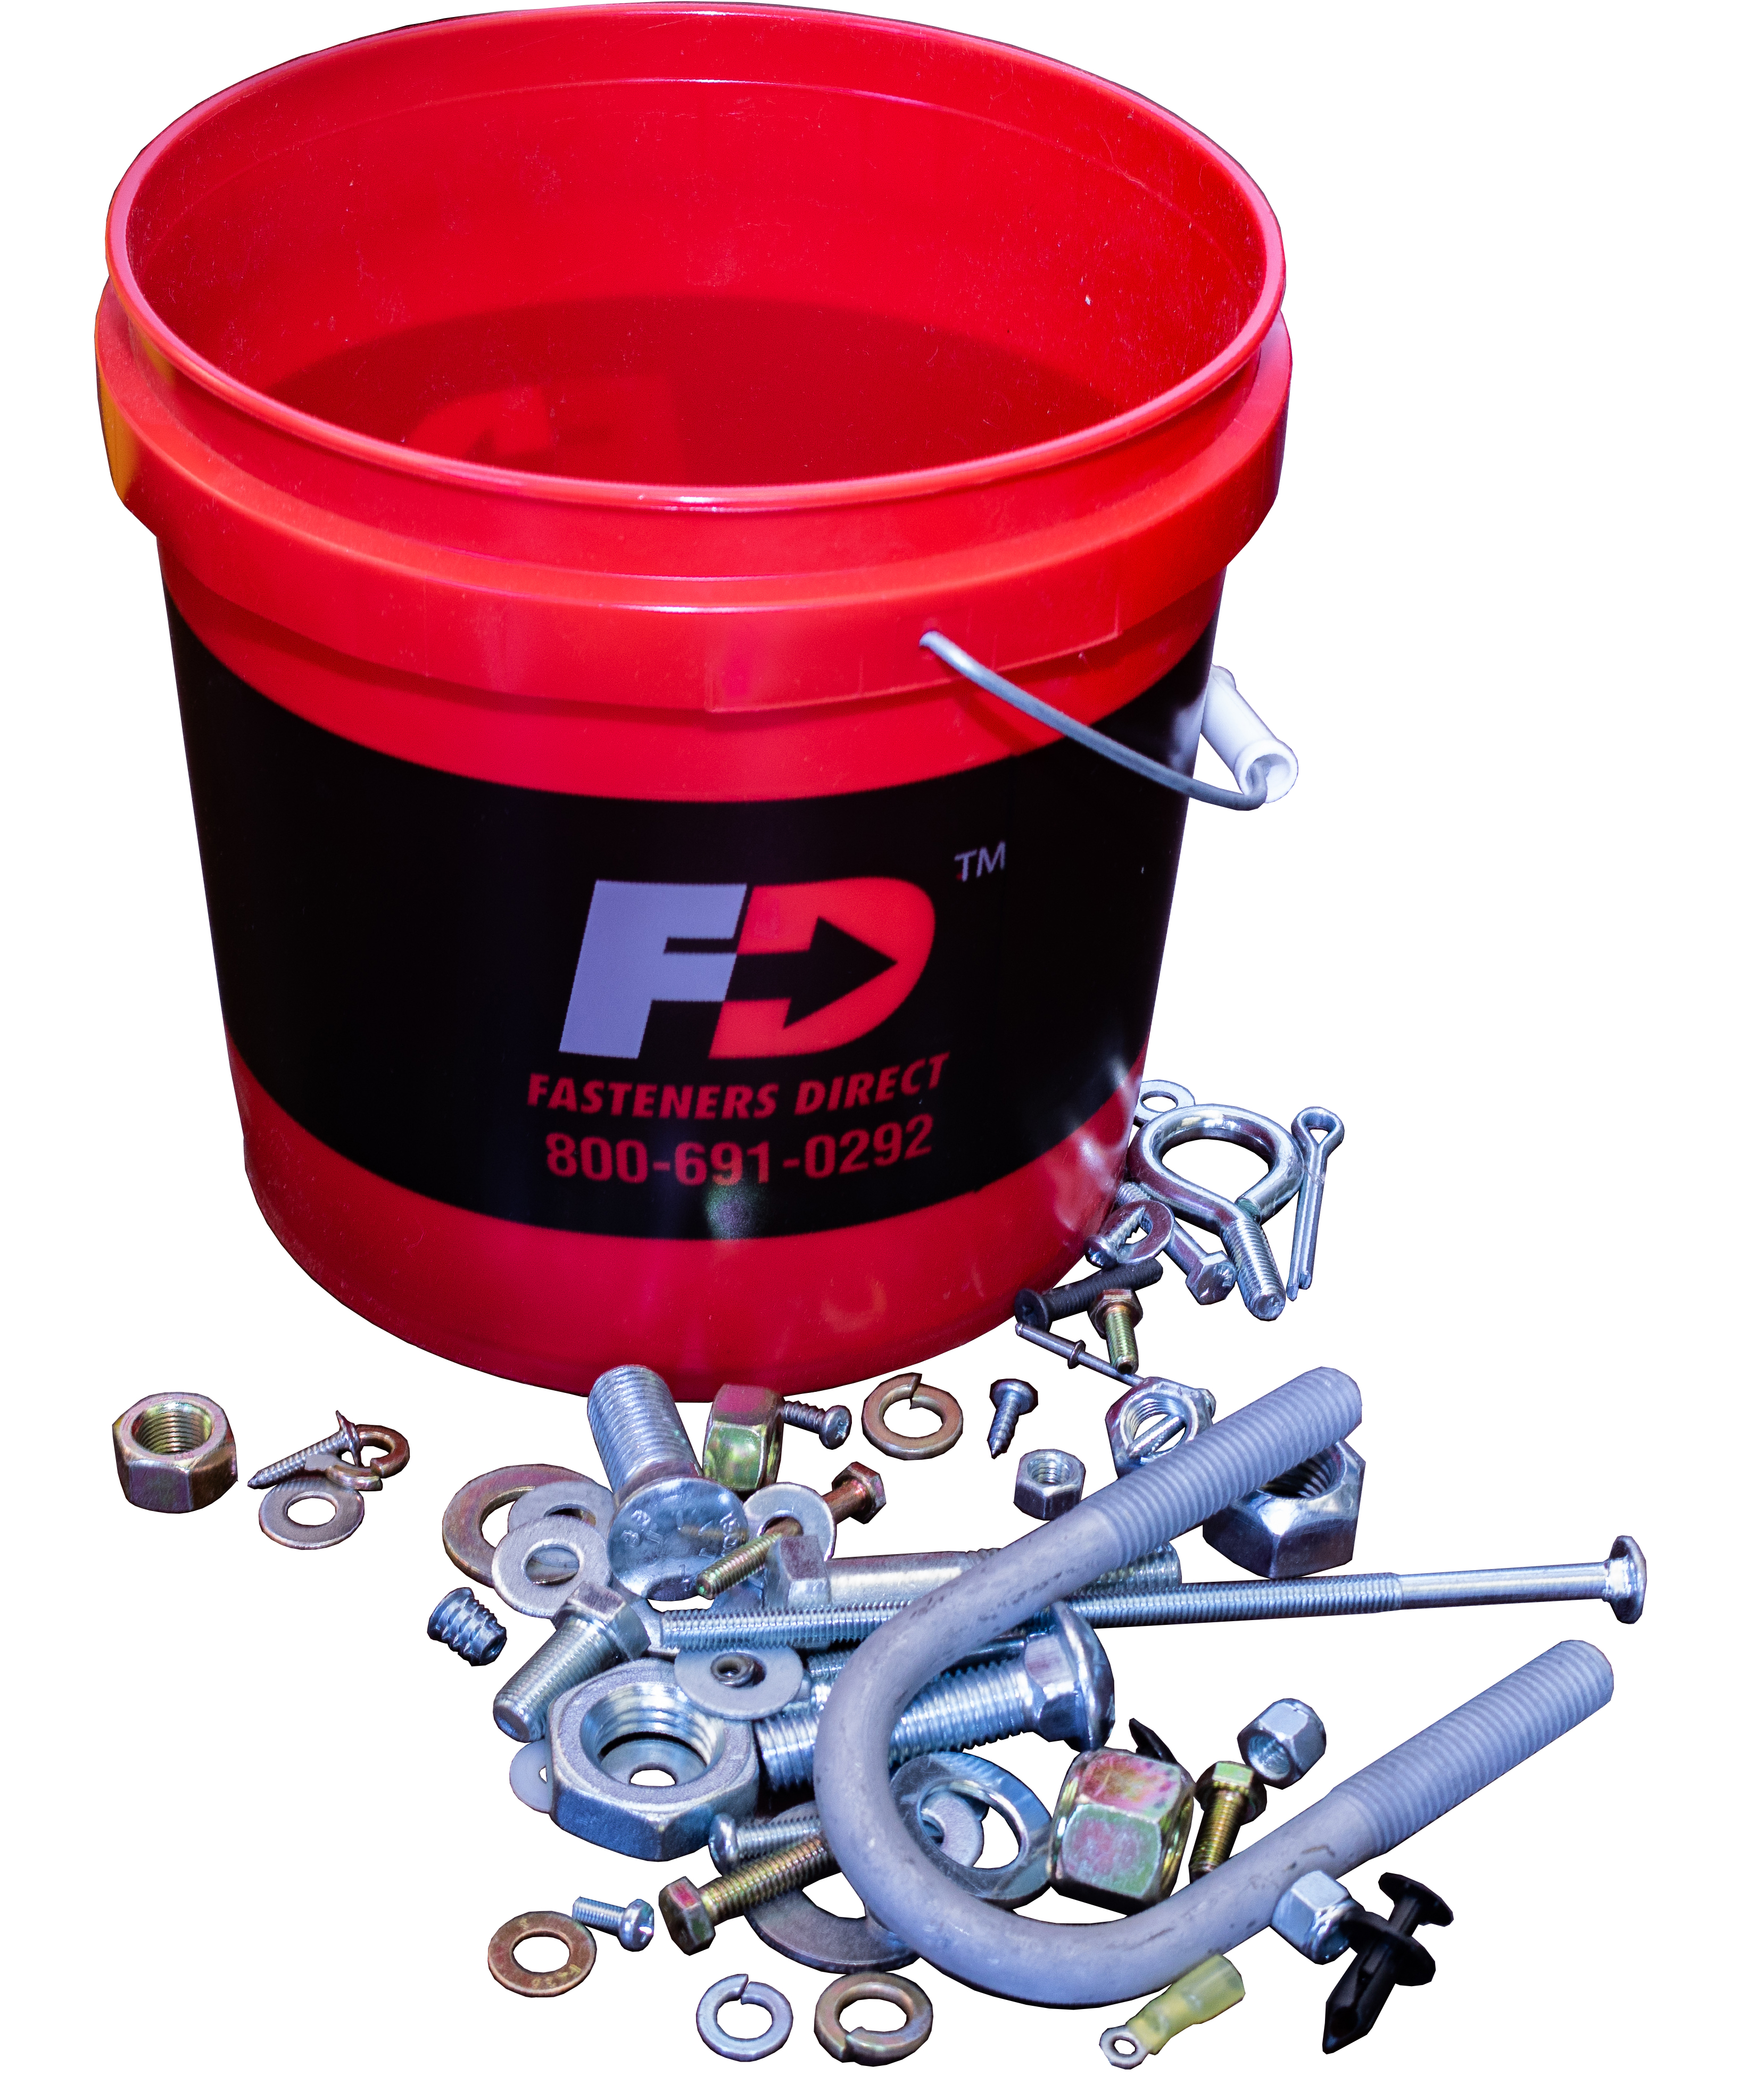 FD Pails for Sure Stock